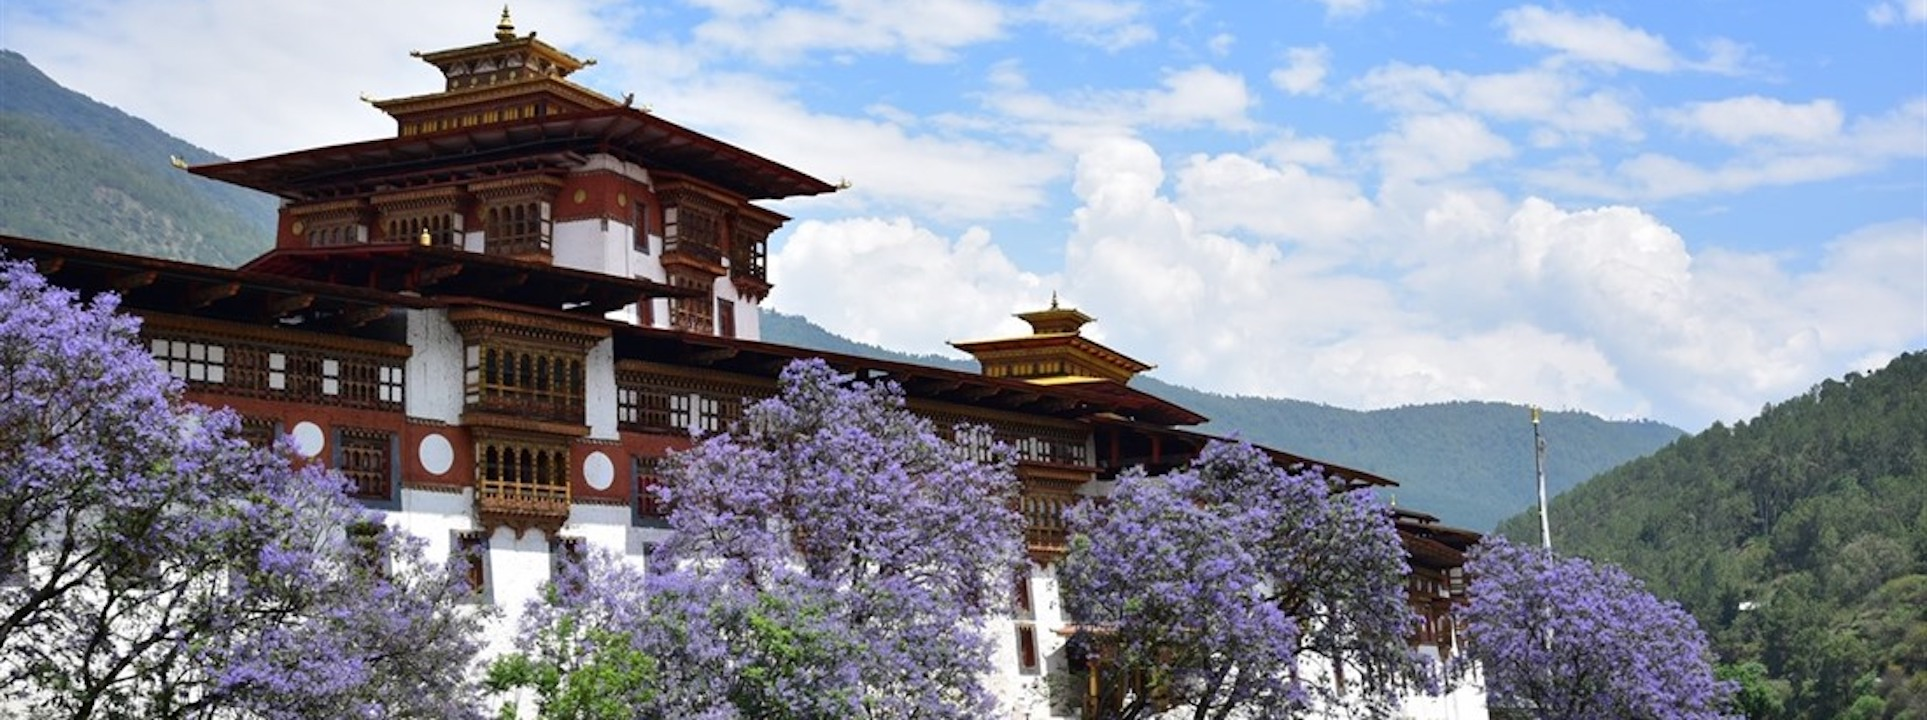 4 Day Tast of Bhutan Deluxe Private tour (economy class flight from Bangkok included) High Season